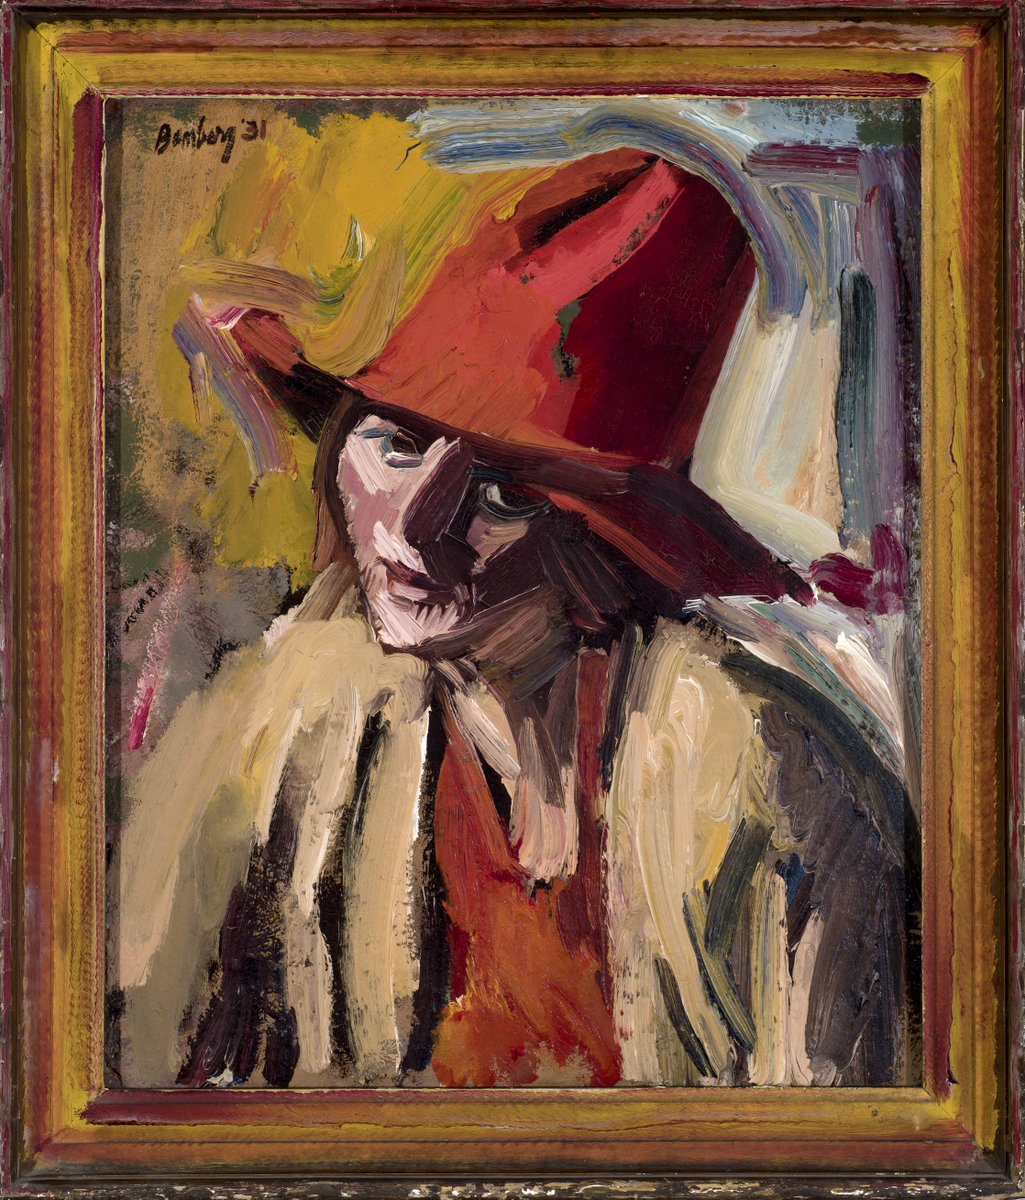 David Bomberg, The Red Hat, 1931, Oil on canvas, Private Collection This boldly painted portrait of Lilian Holt, wearing a red hat, is one of his finest; the dominant crimson palette even seeping onto the frame.© The estate of David Bomberg, the Bridgeman Art Library